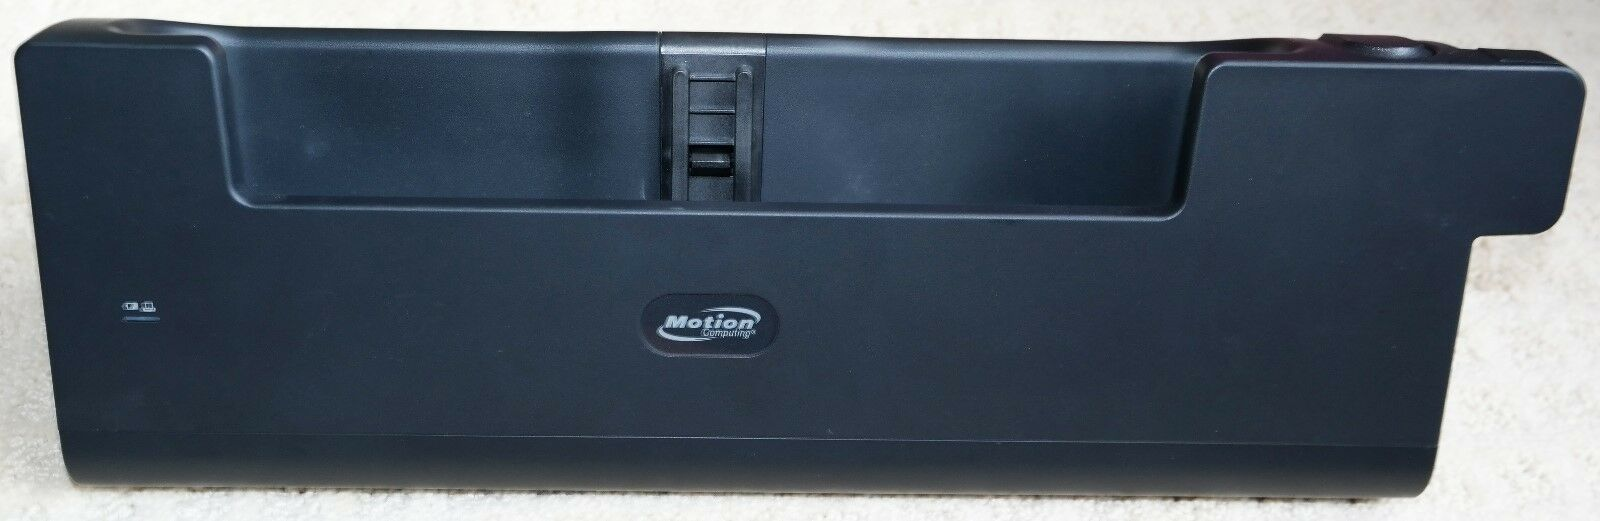 Motion Computing F5 Docking Station (Black) with Multible Ports